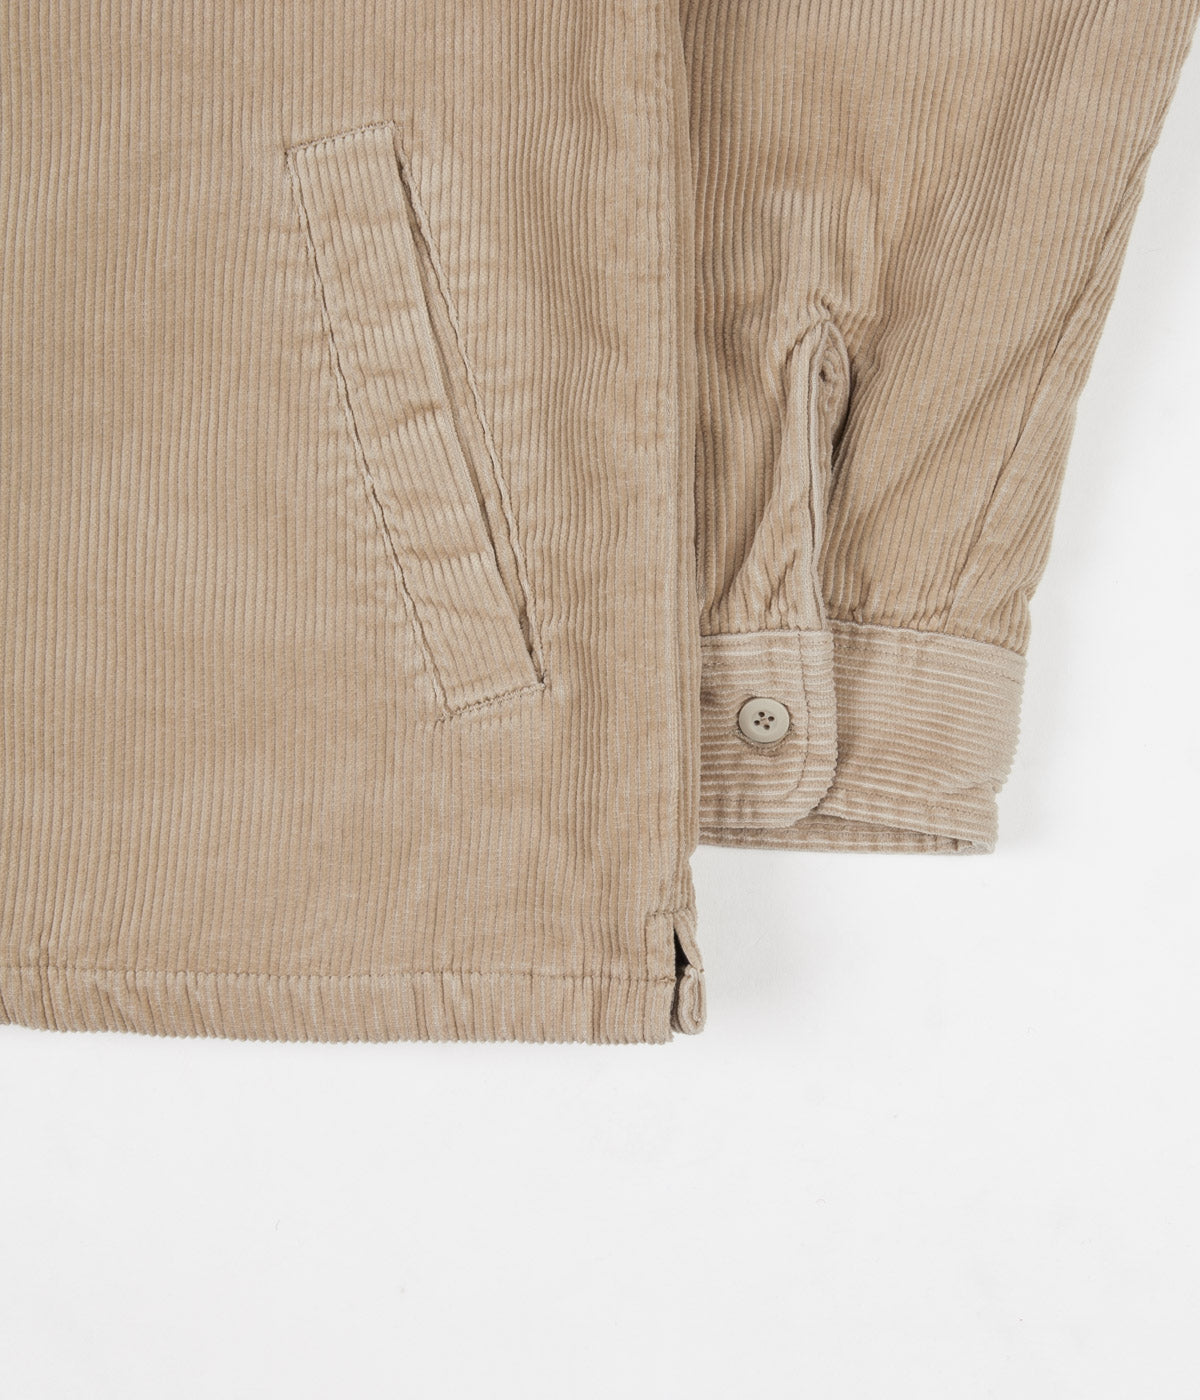 Carhartt Whitsome Shirt Jacket - Wall